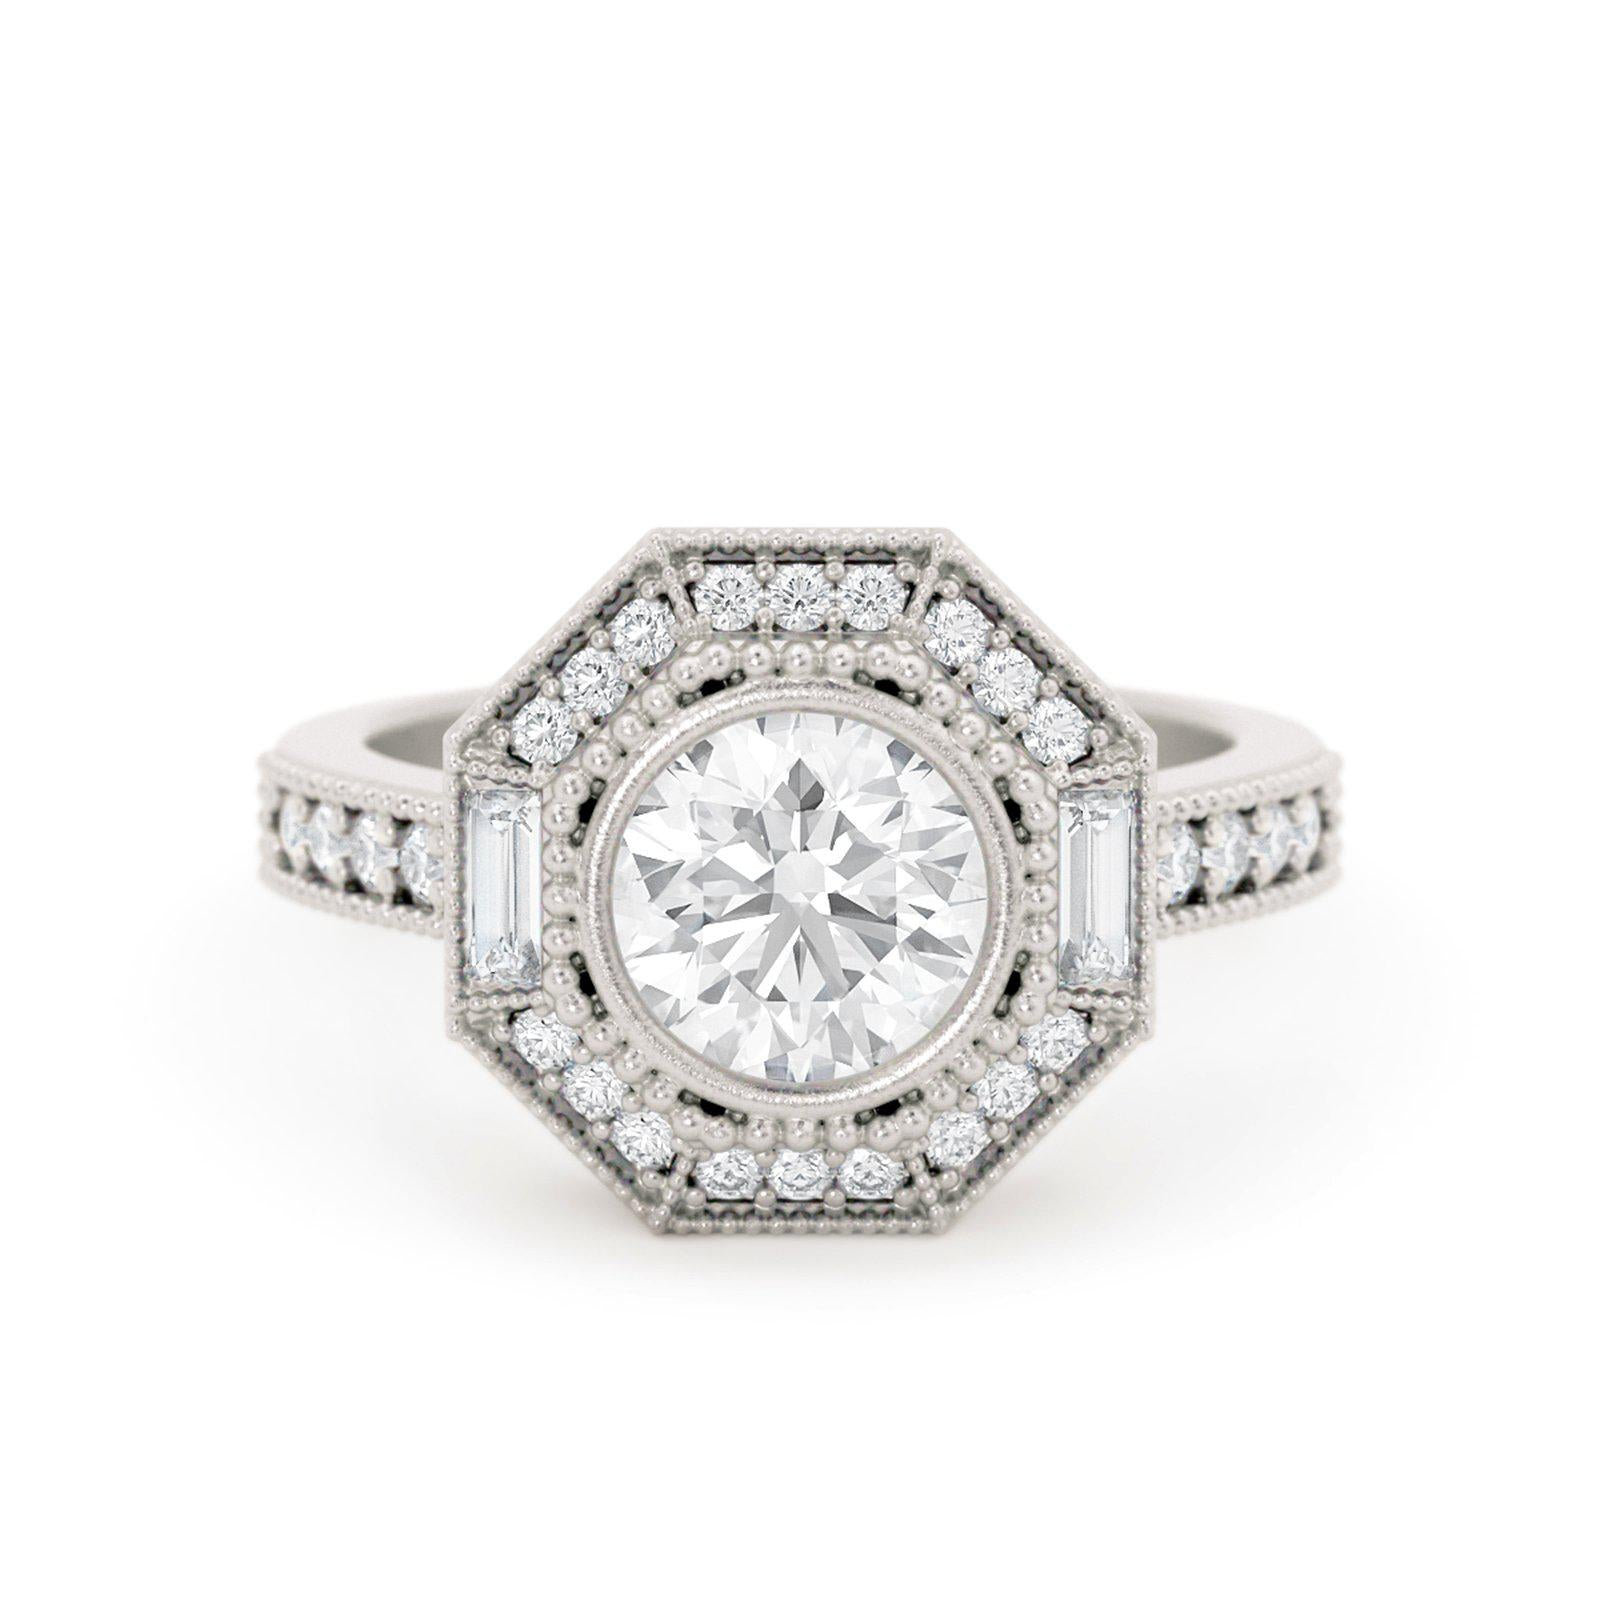 Monroe Art Deco Diamond Ring White Gold